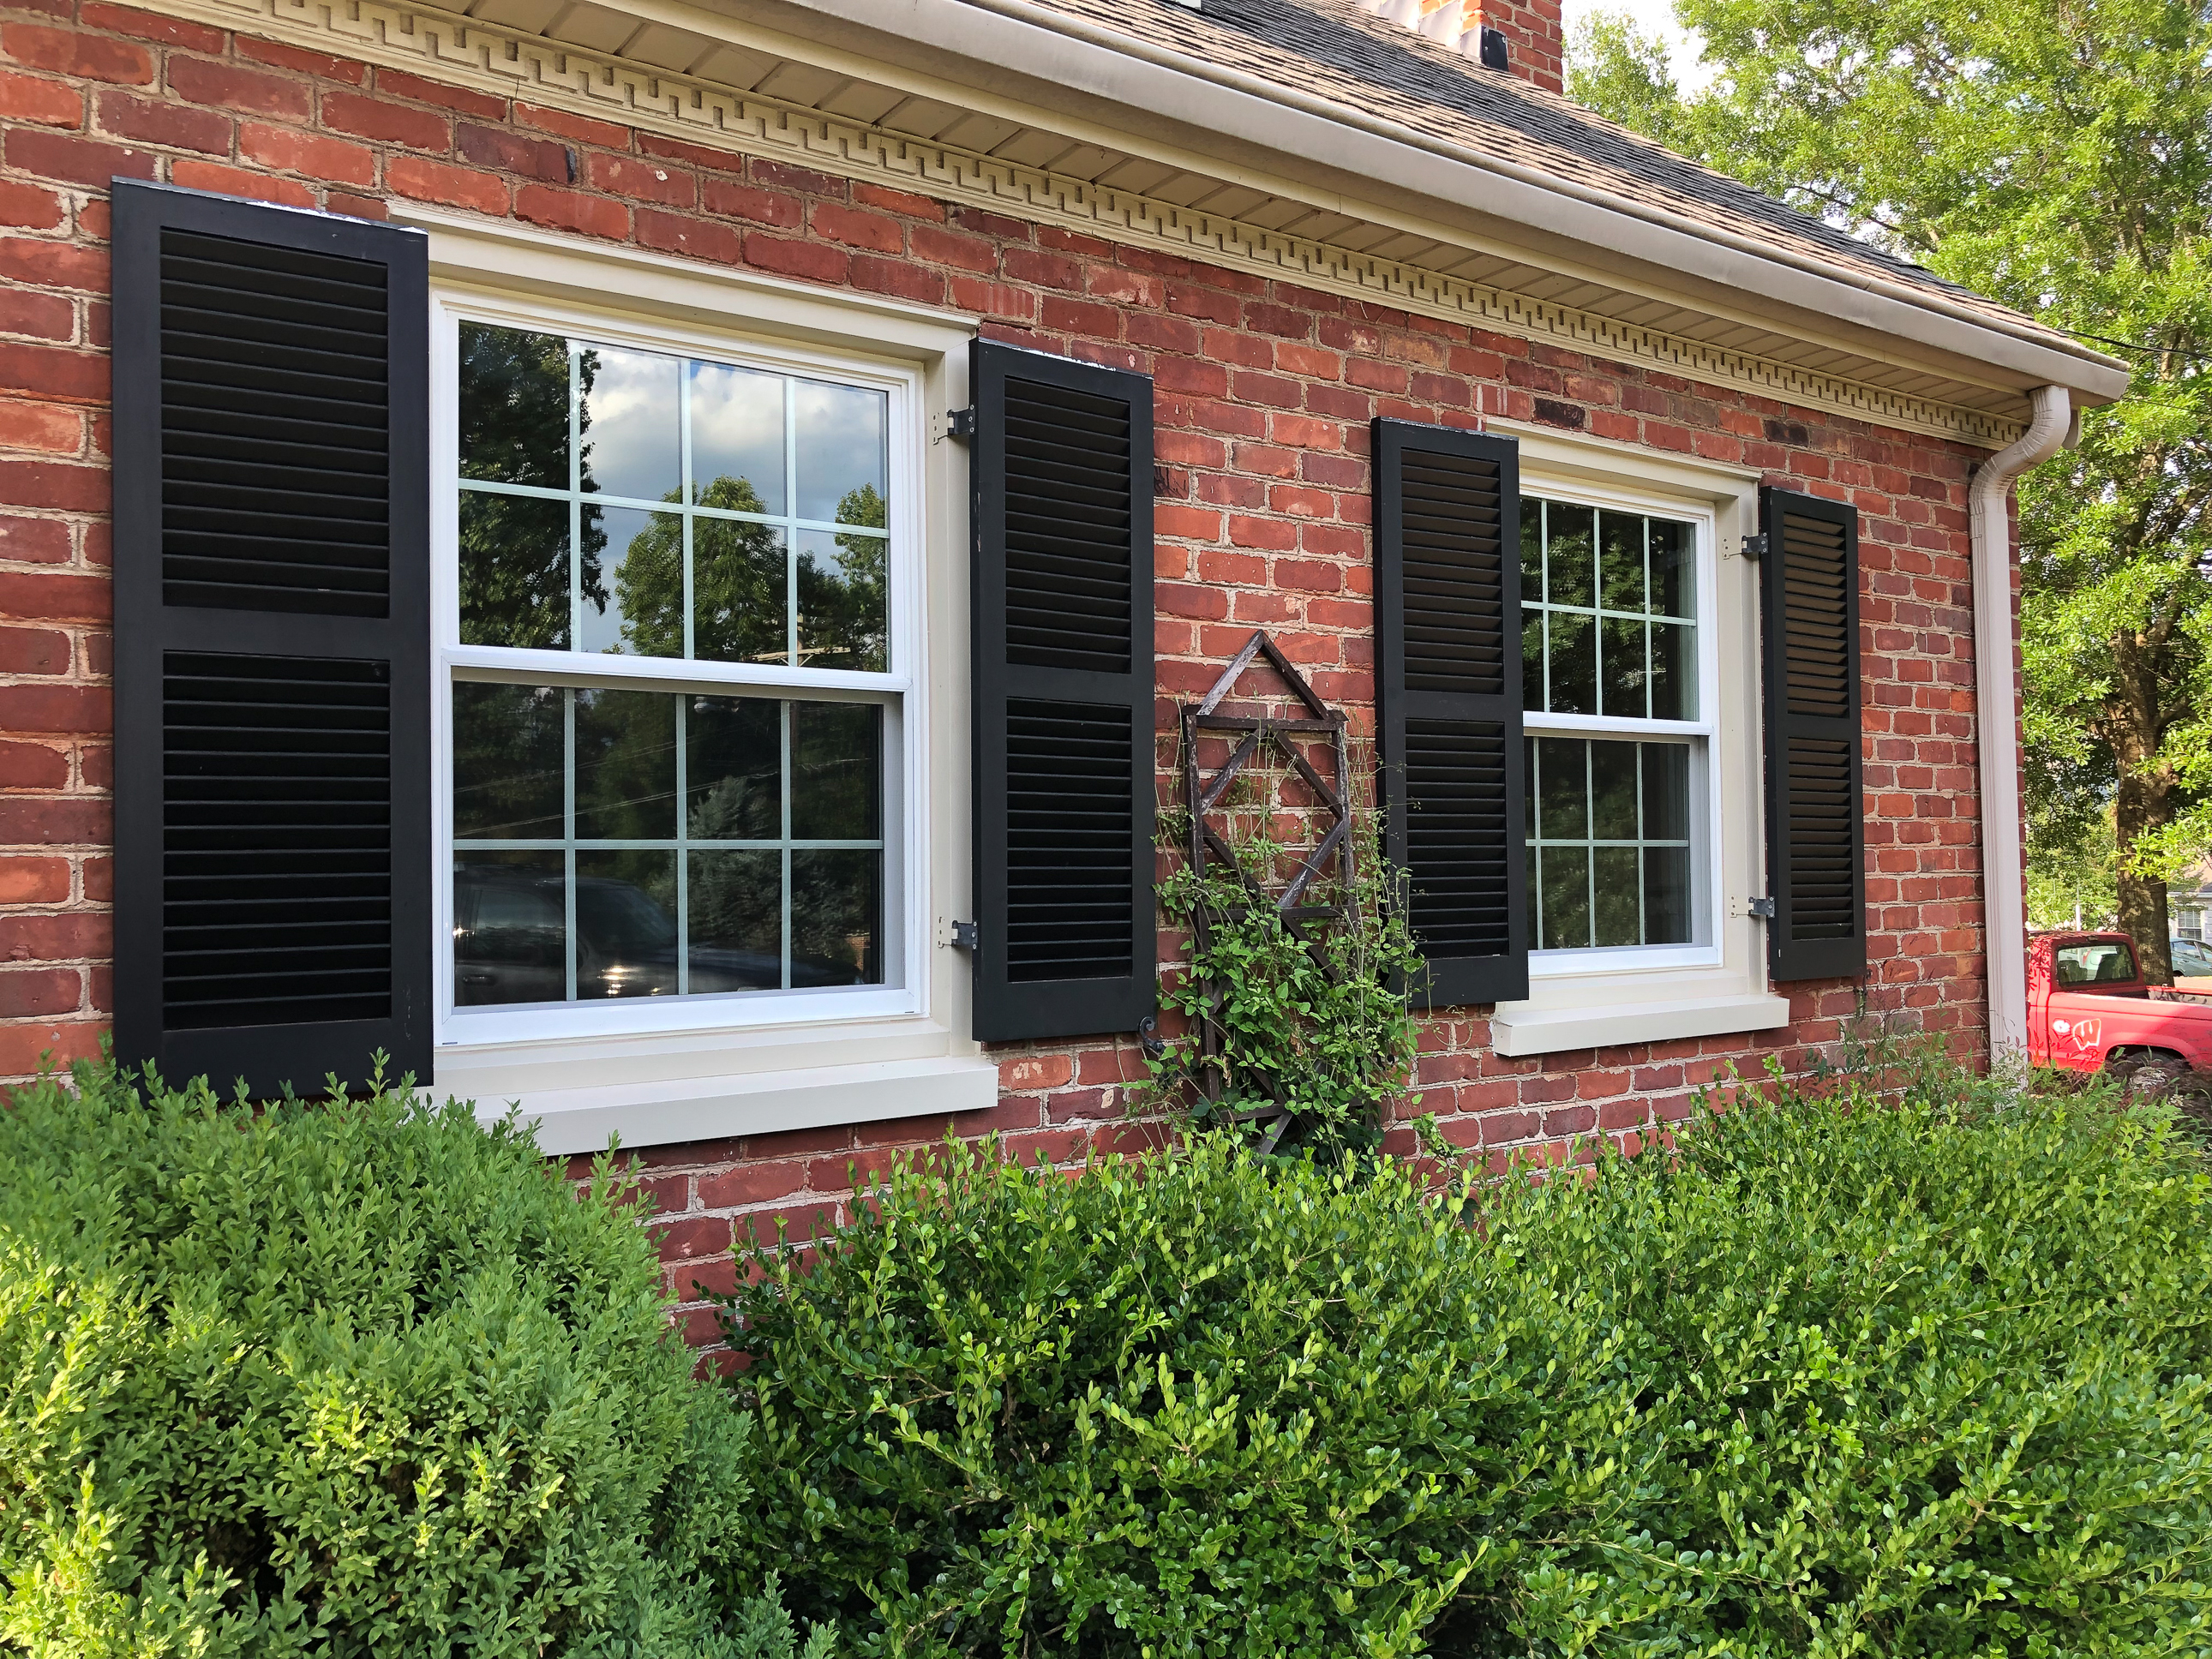 A home in Lynchburg, VA with replacement windows by Hometown Windows.